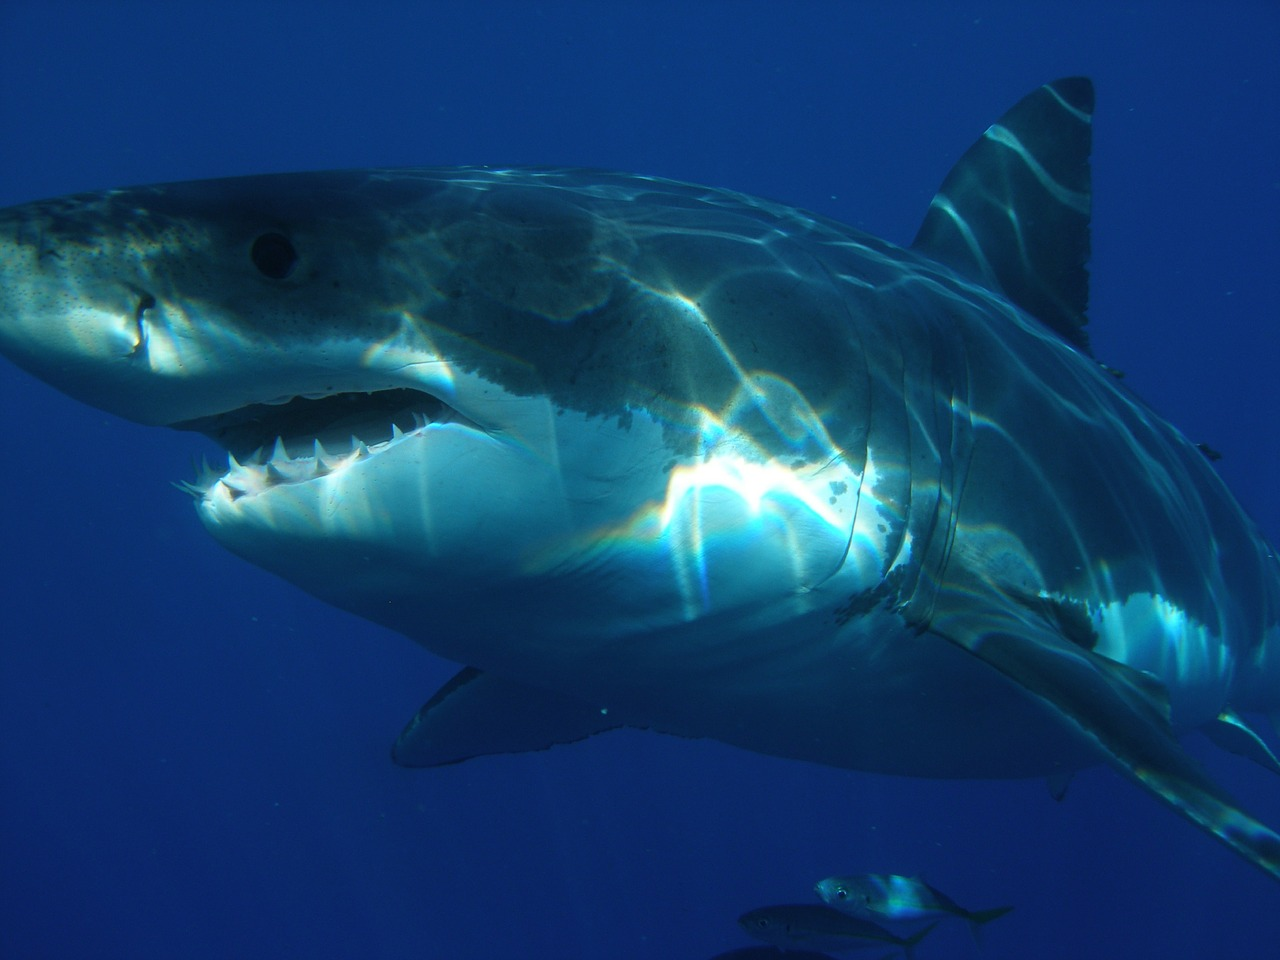 great-white-shark-398276_1280.jpg